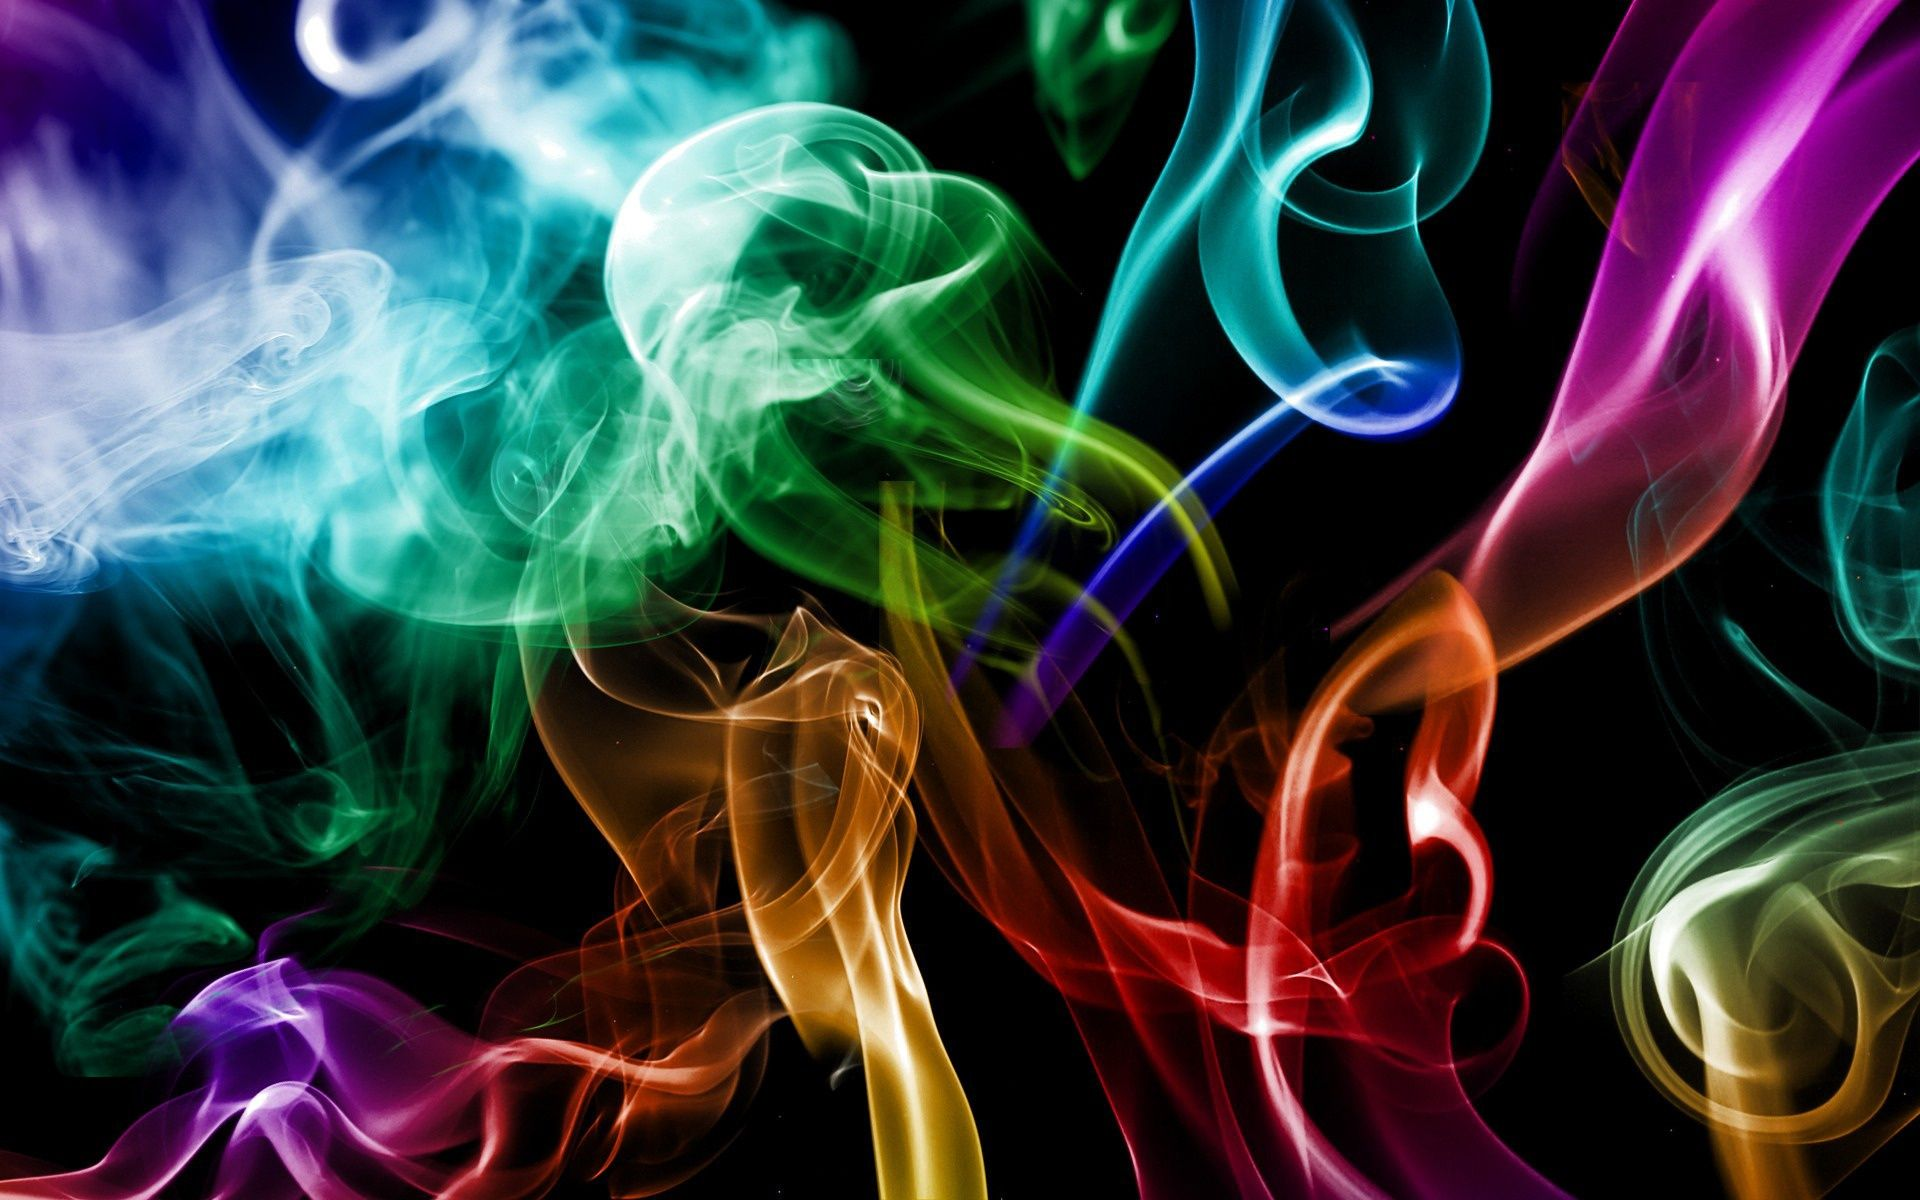 Wallpaper Smoke Colored Wallpapers Backgrounds